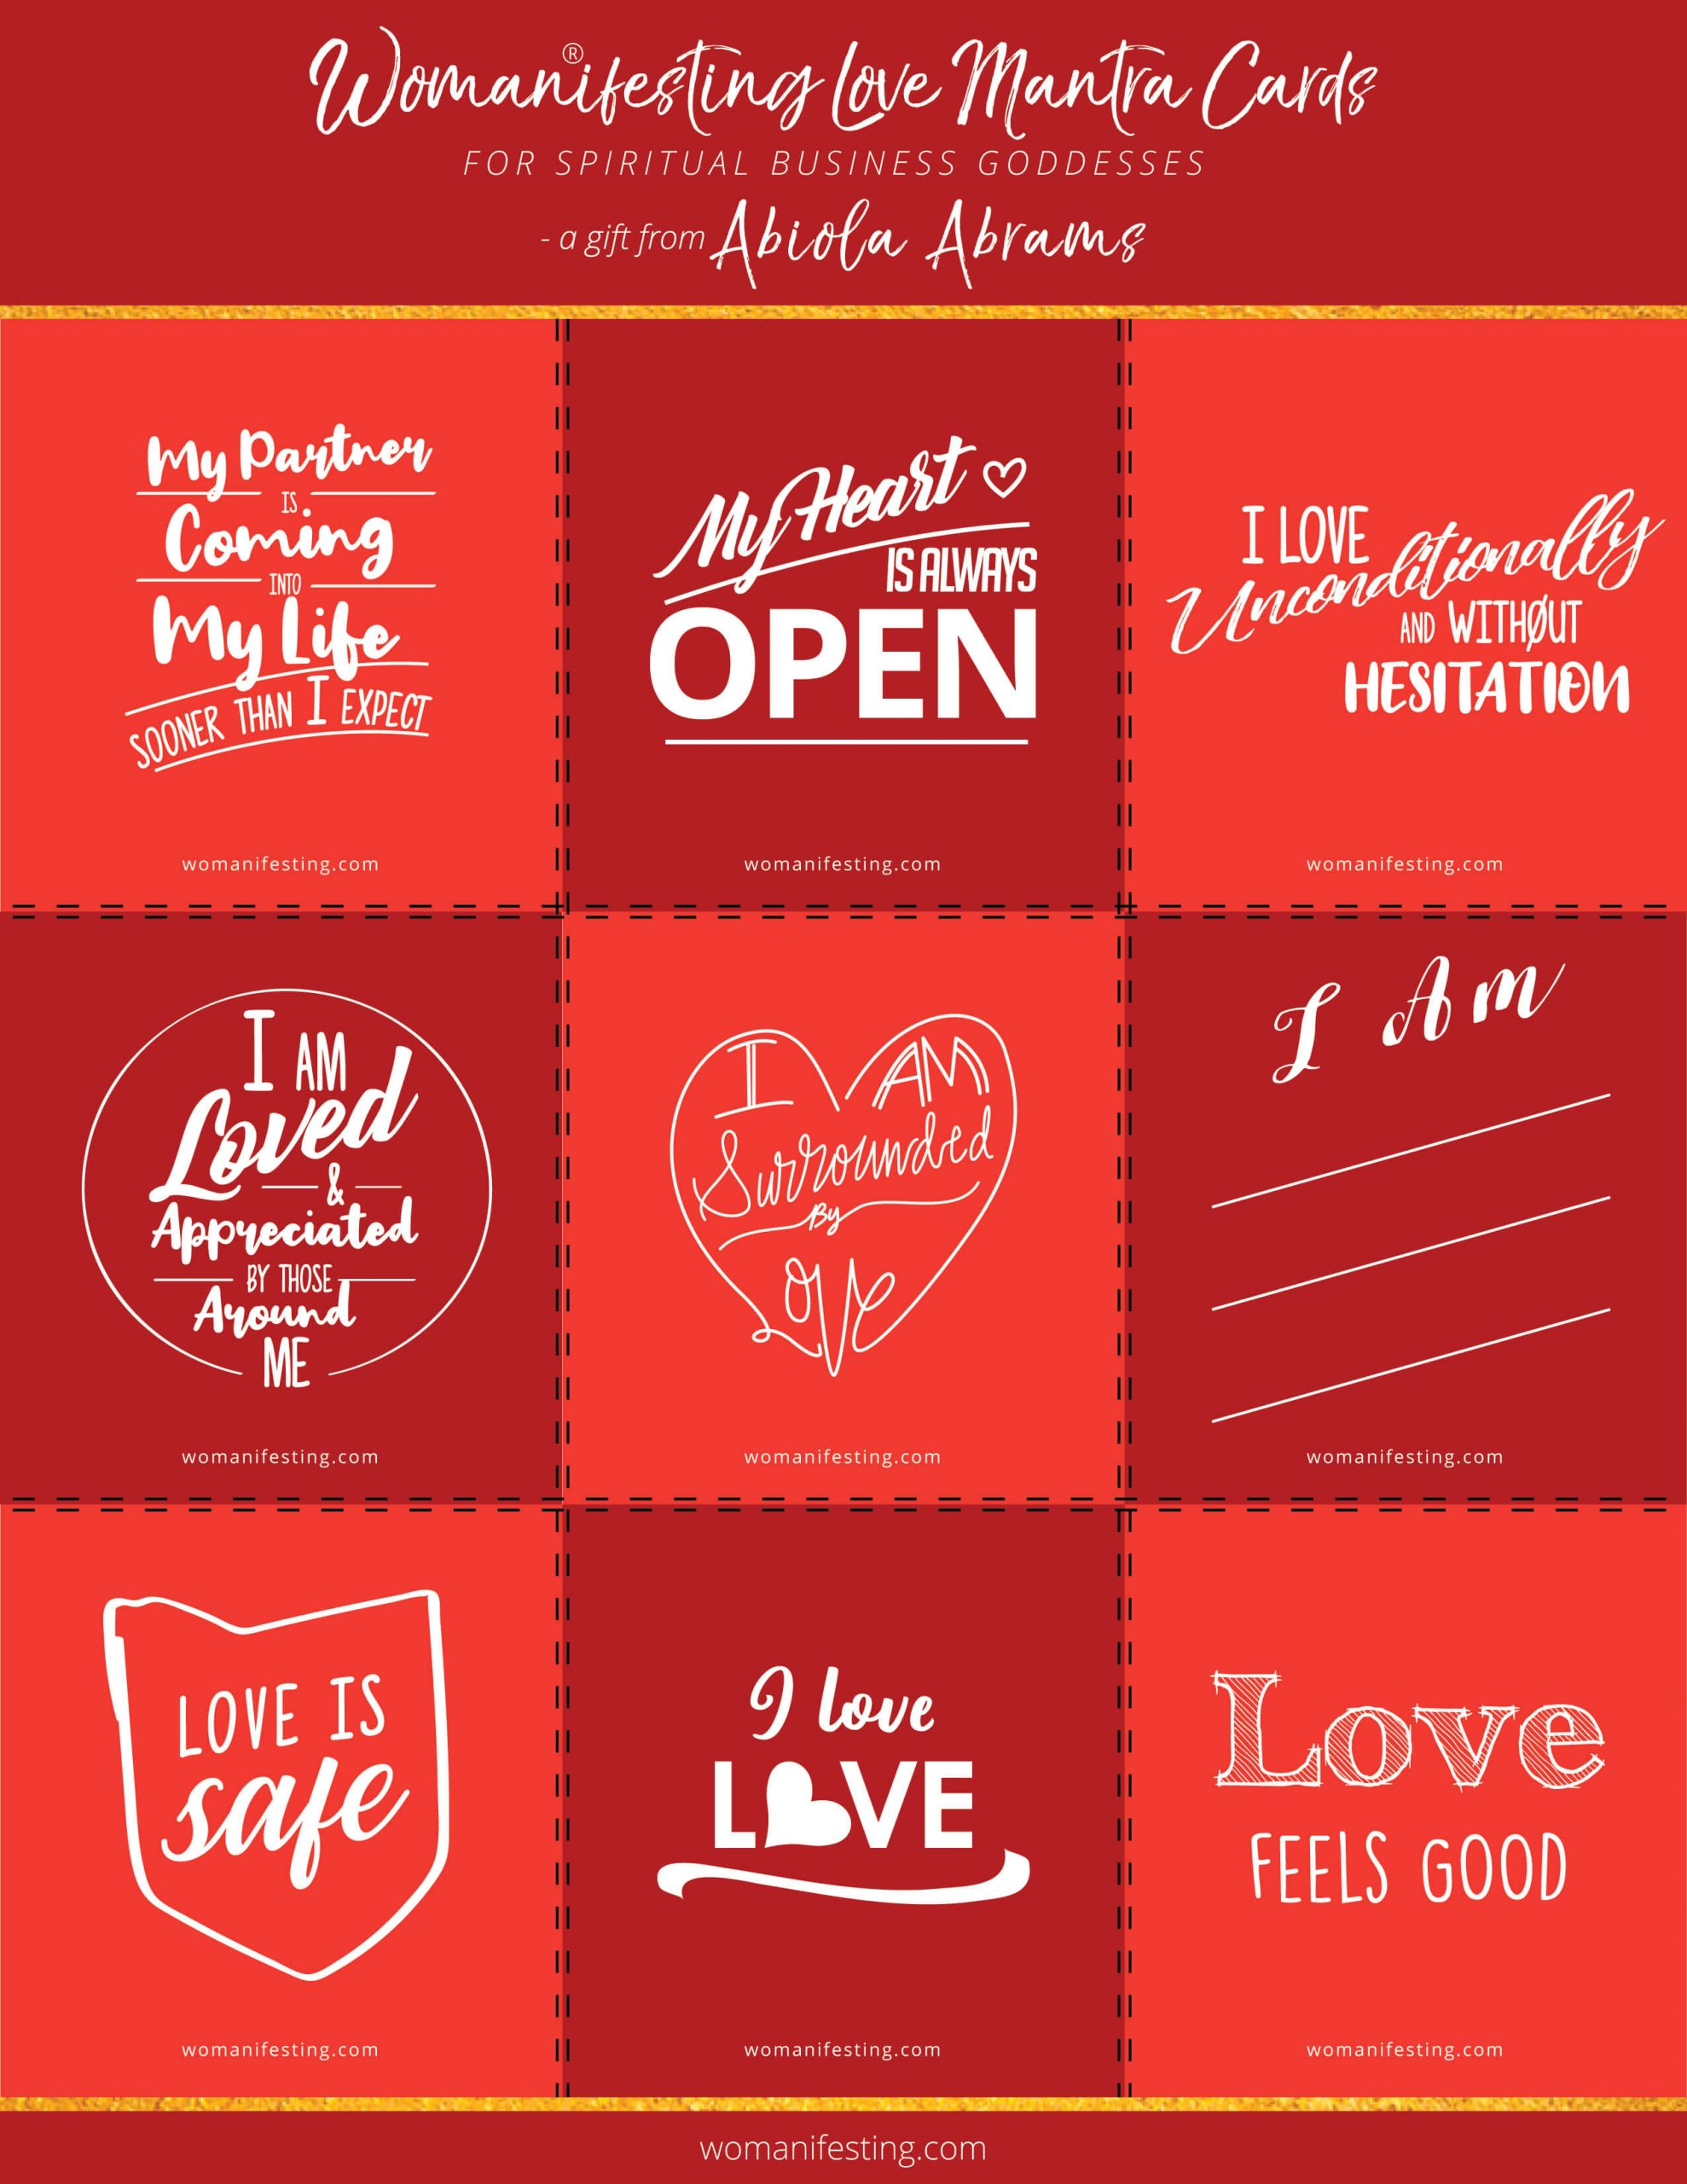 Free Relationship and Love Mantra Affirmation Cards [Printable Inspiration]